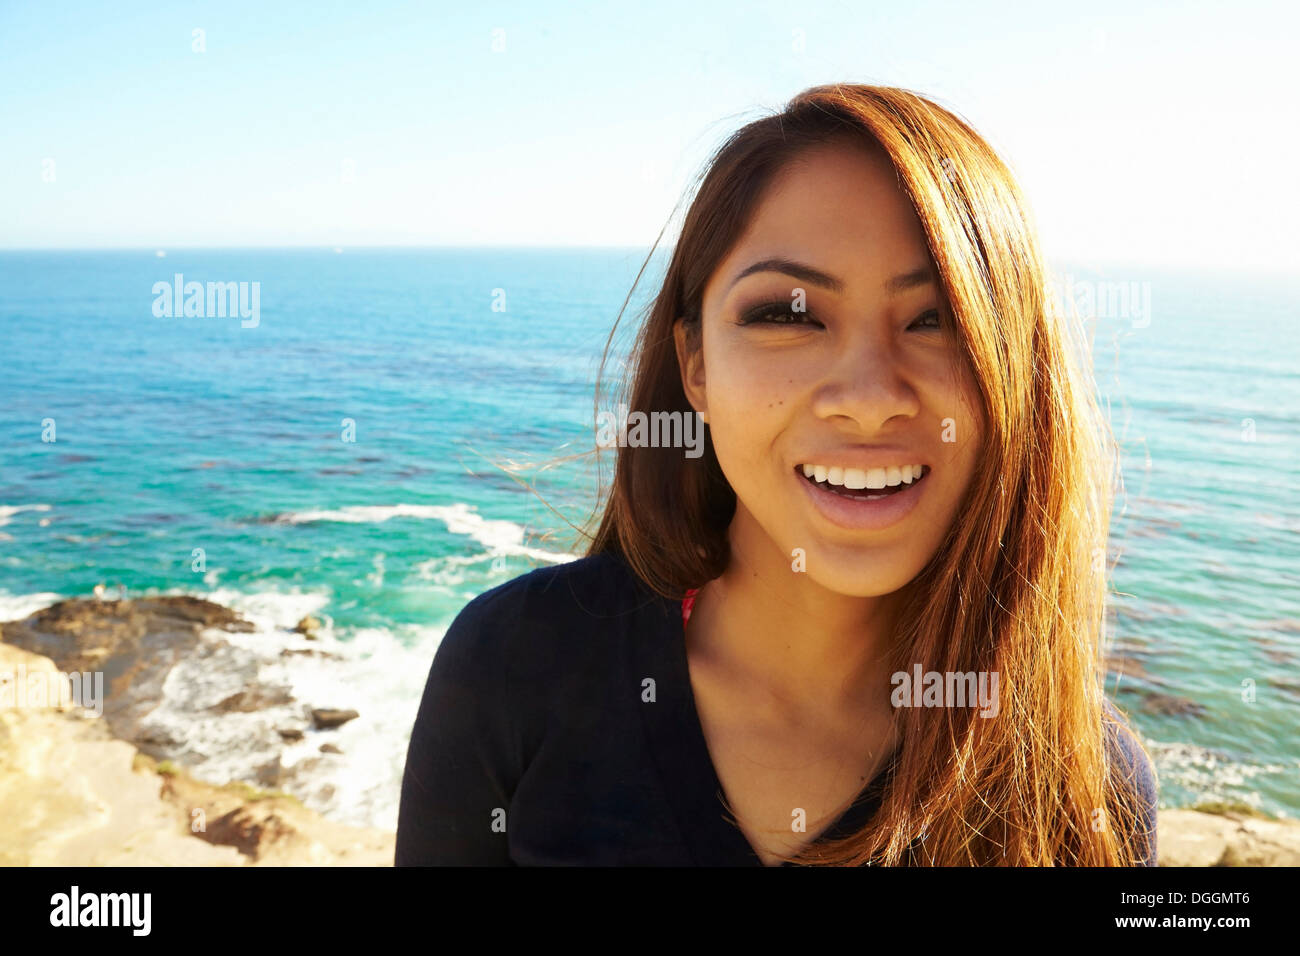 Portrait of young woman smiling, Palos Verdes, California, USA Photo Stock